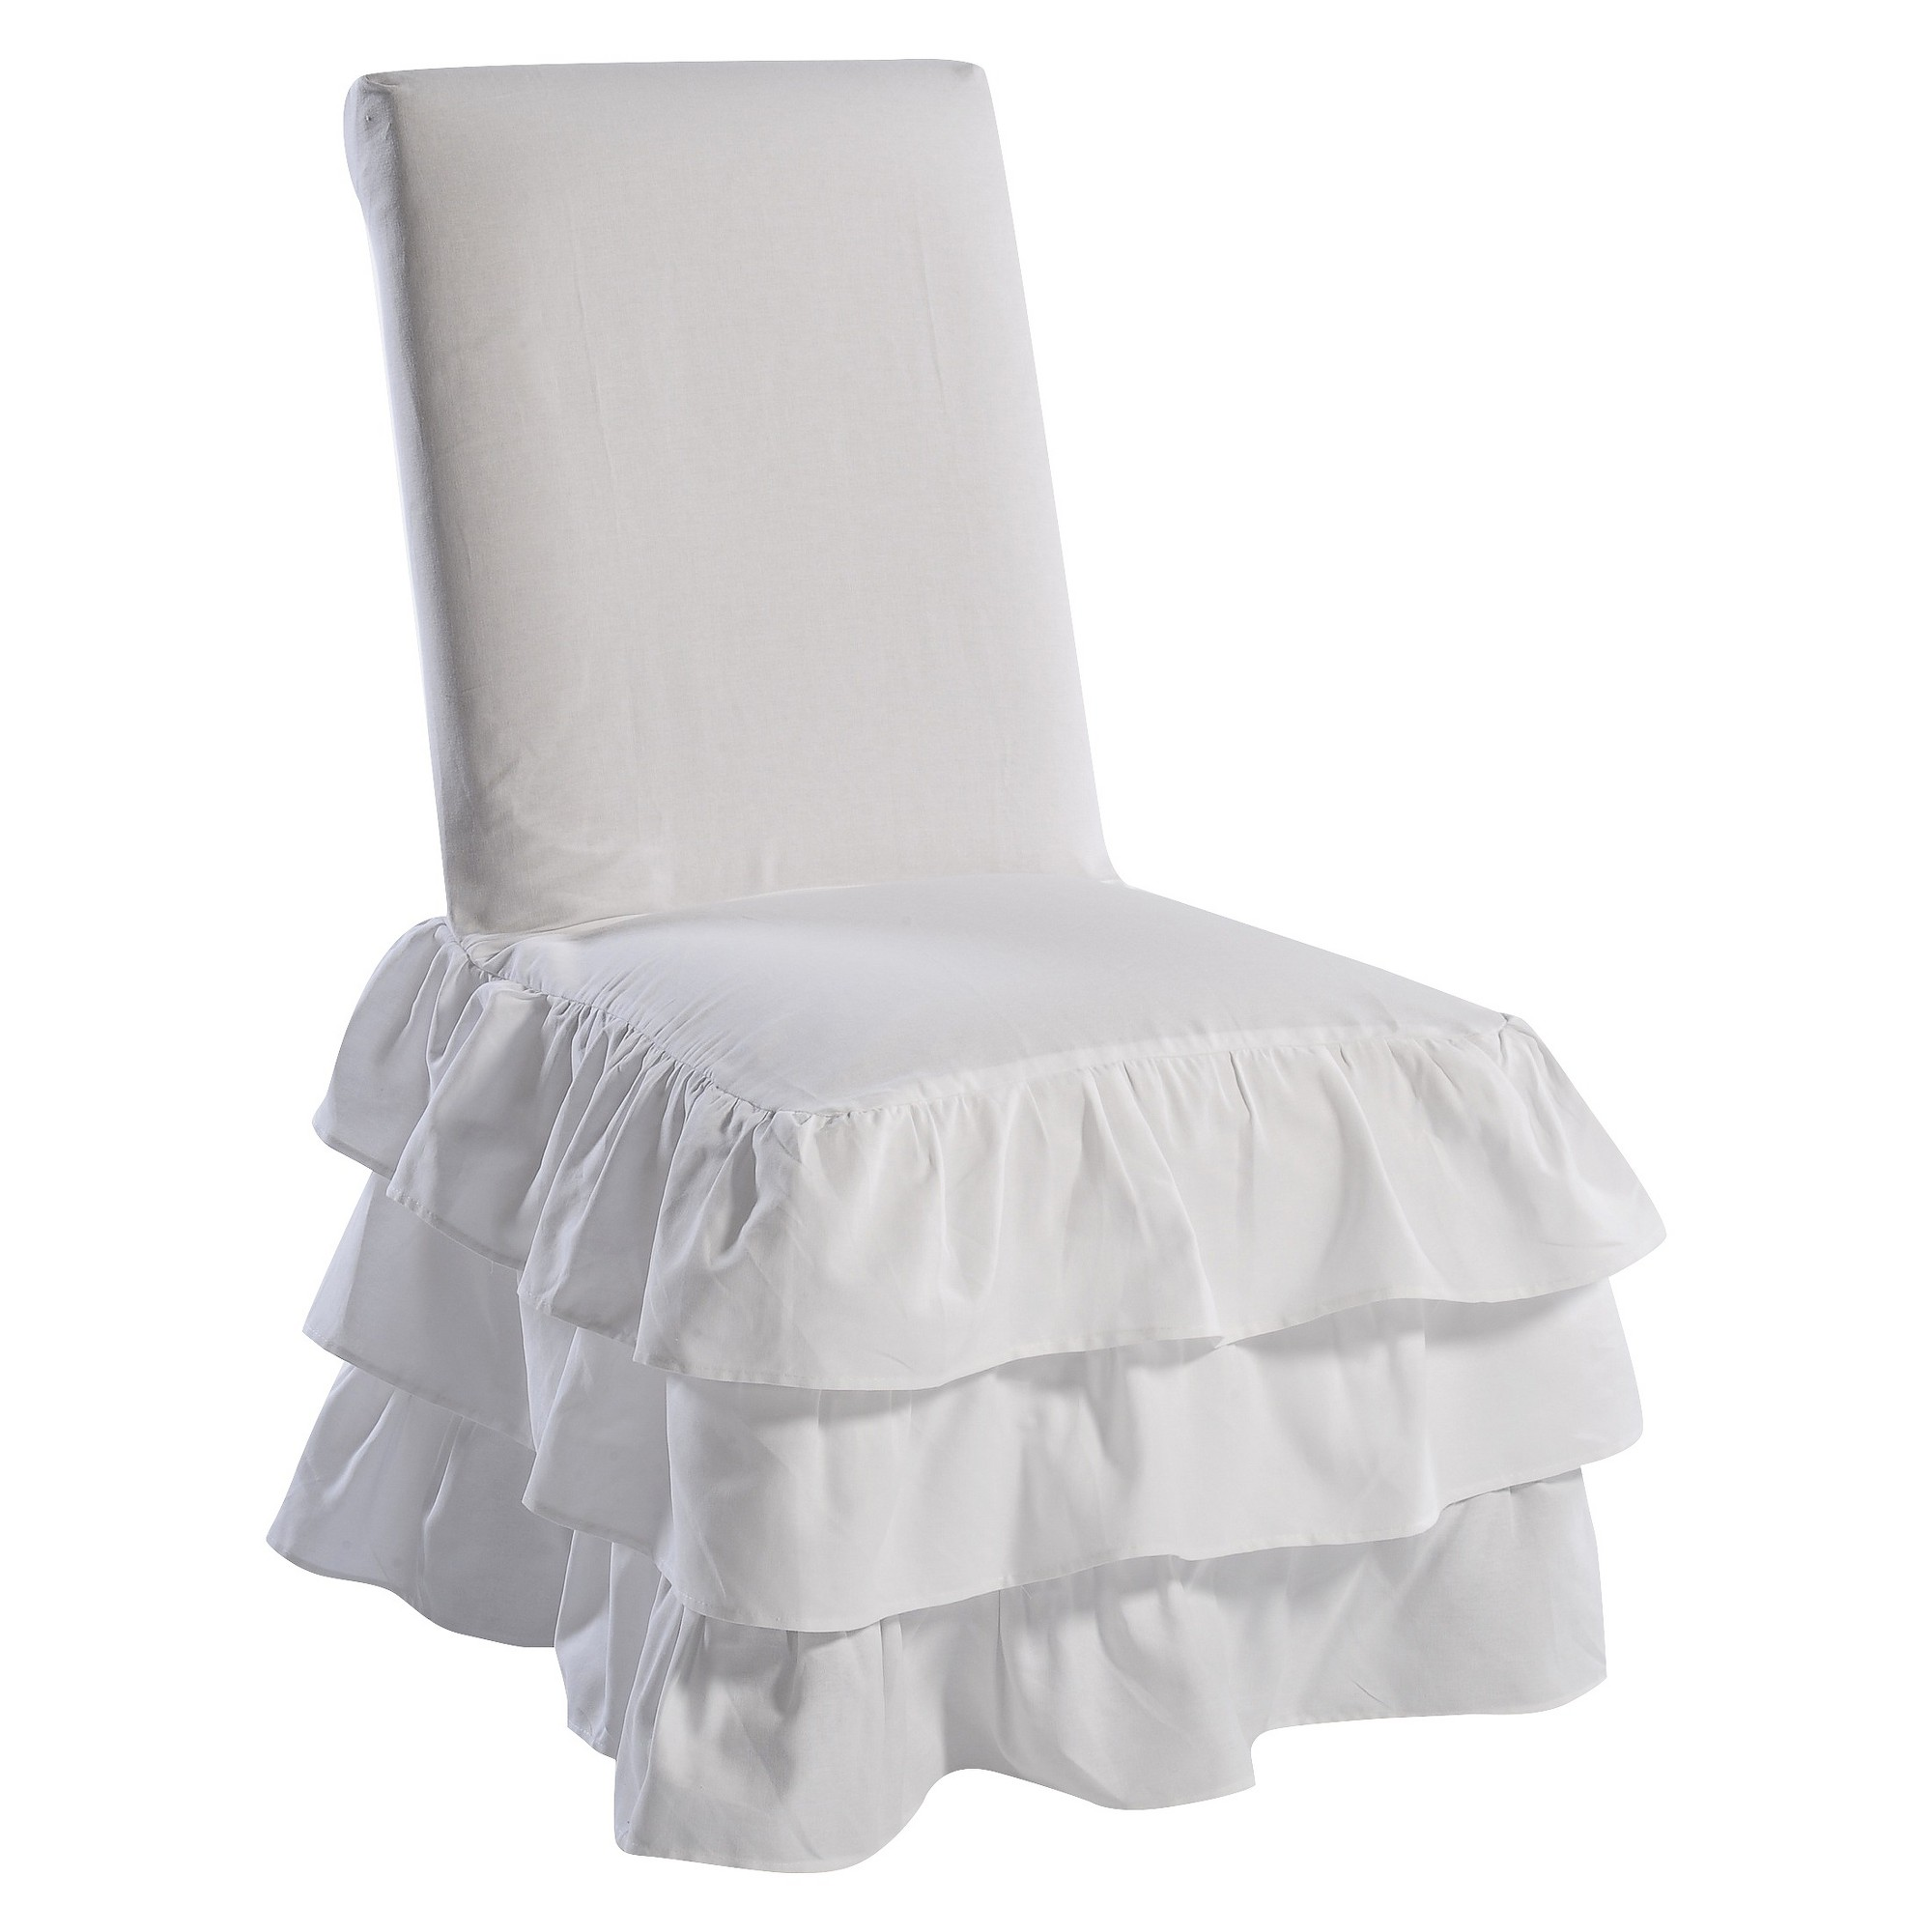 White Ruffle 3Tiered Dining Chair Slipcover Slipcovers